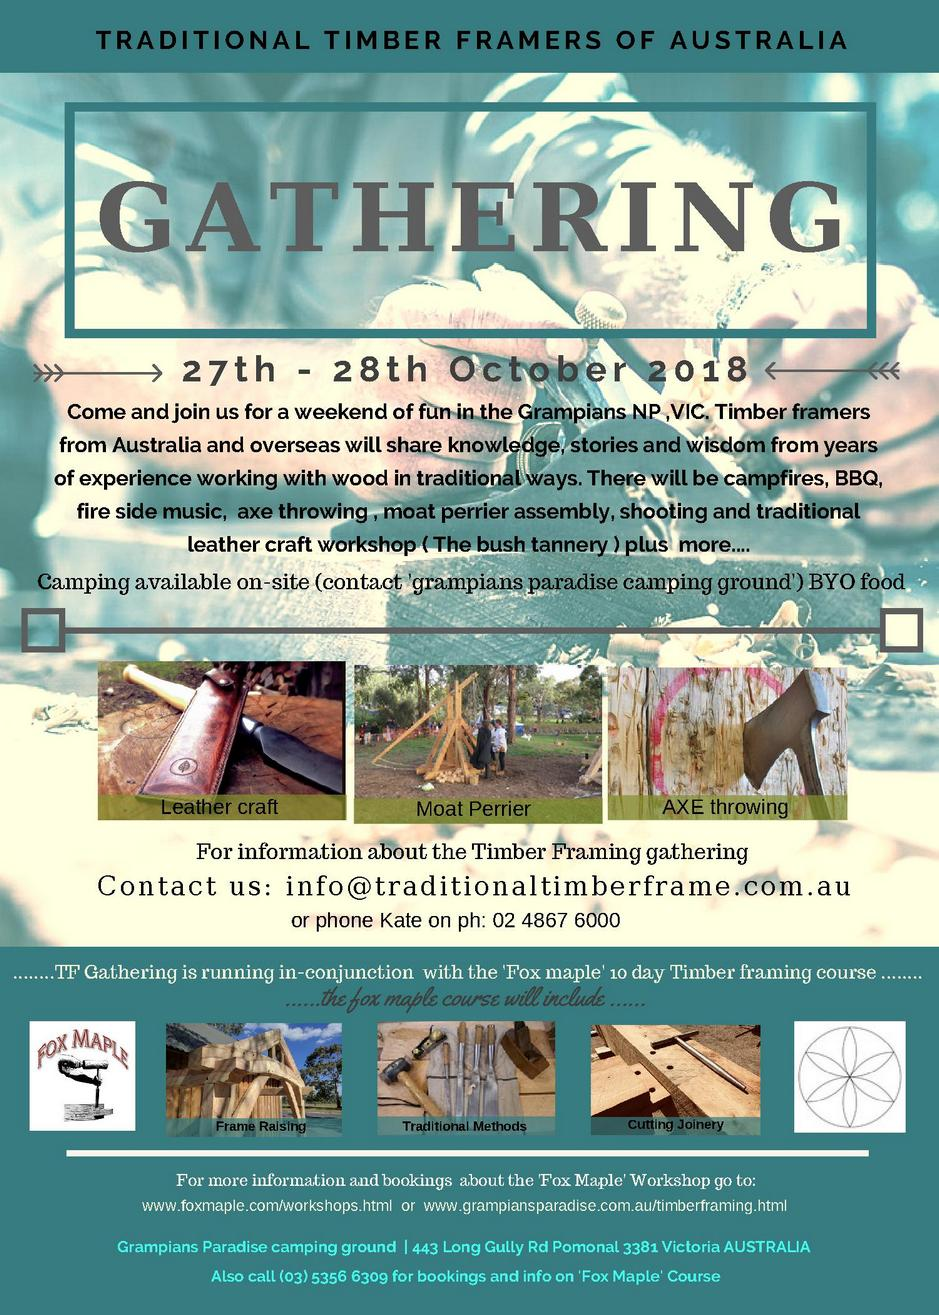 The Timber Framers Gathering in at Grampians Paradise for the weekend of the 27th and 28th October 2018. All are welcome to come